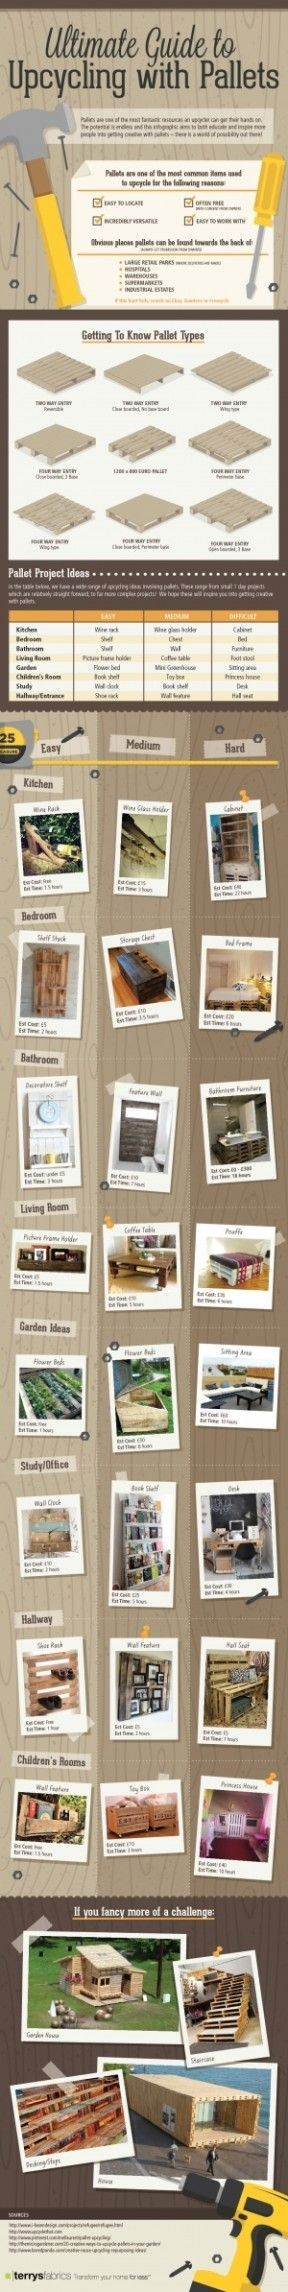 Ultimate guide to upcycling pallets pallet ideas Upcycling for beginners